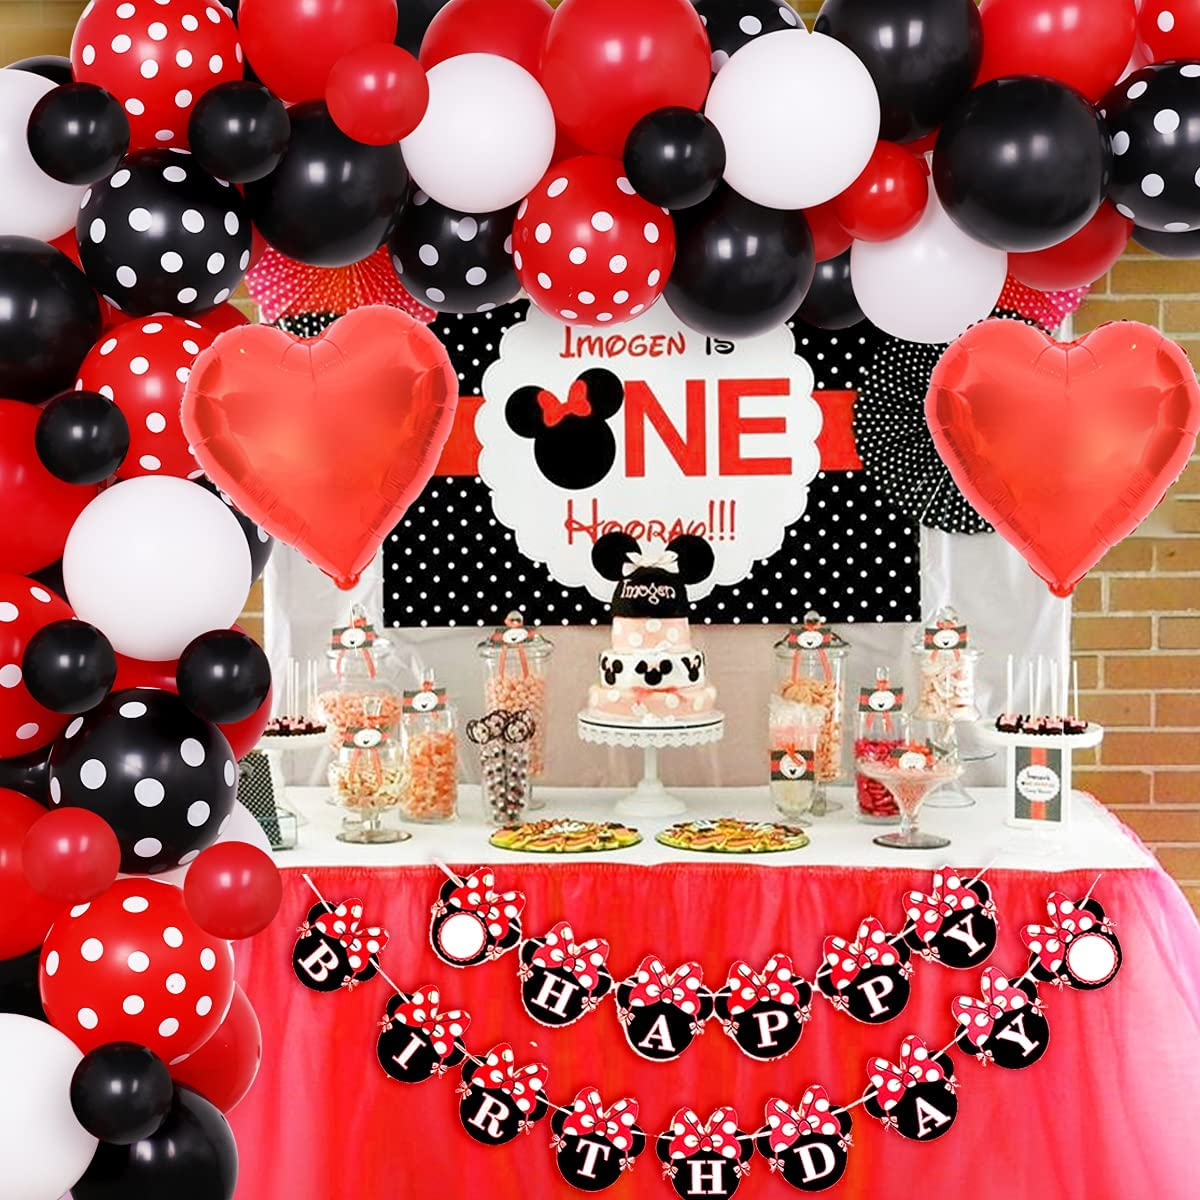 Minnie Balloon Arch Decorations Minnie Party Decor Cake Table Gift Table Red Minnie Mouse Birthday Balloons DIY KIT easy to assemble